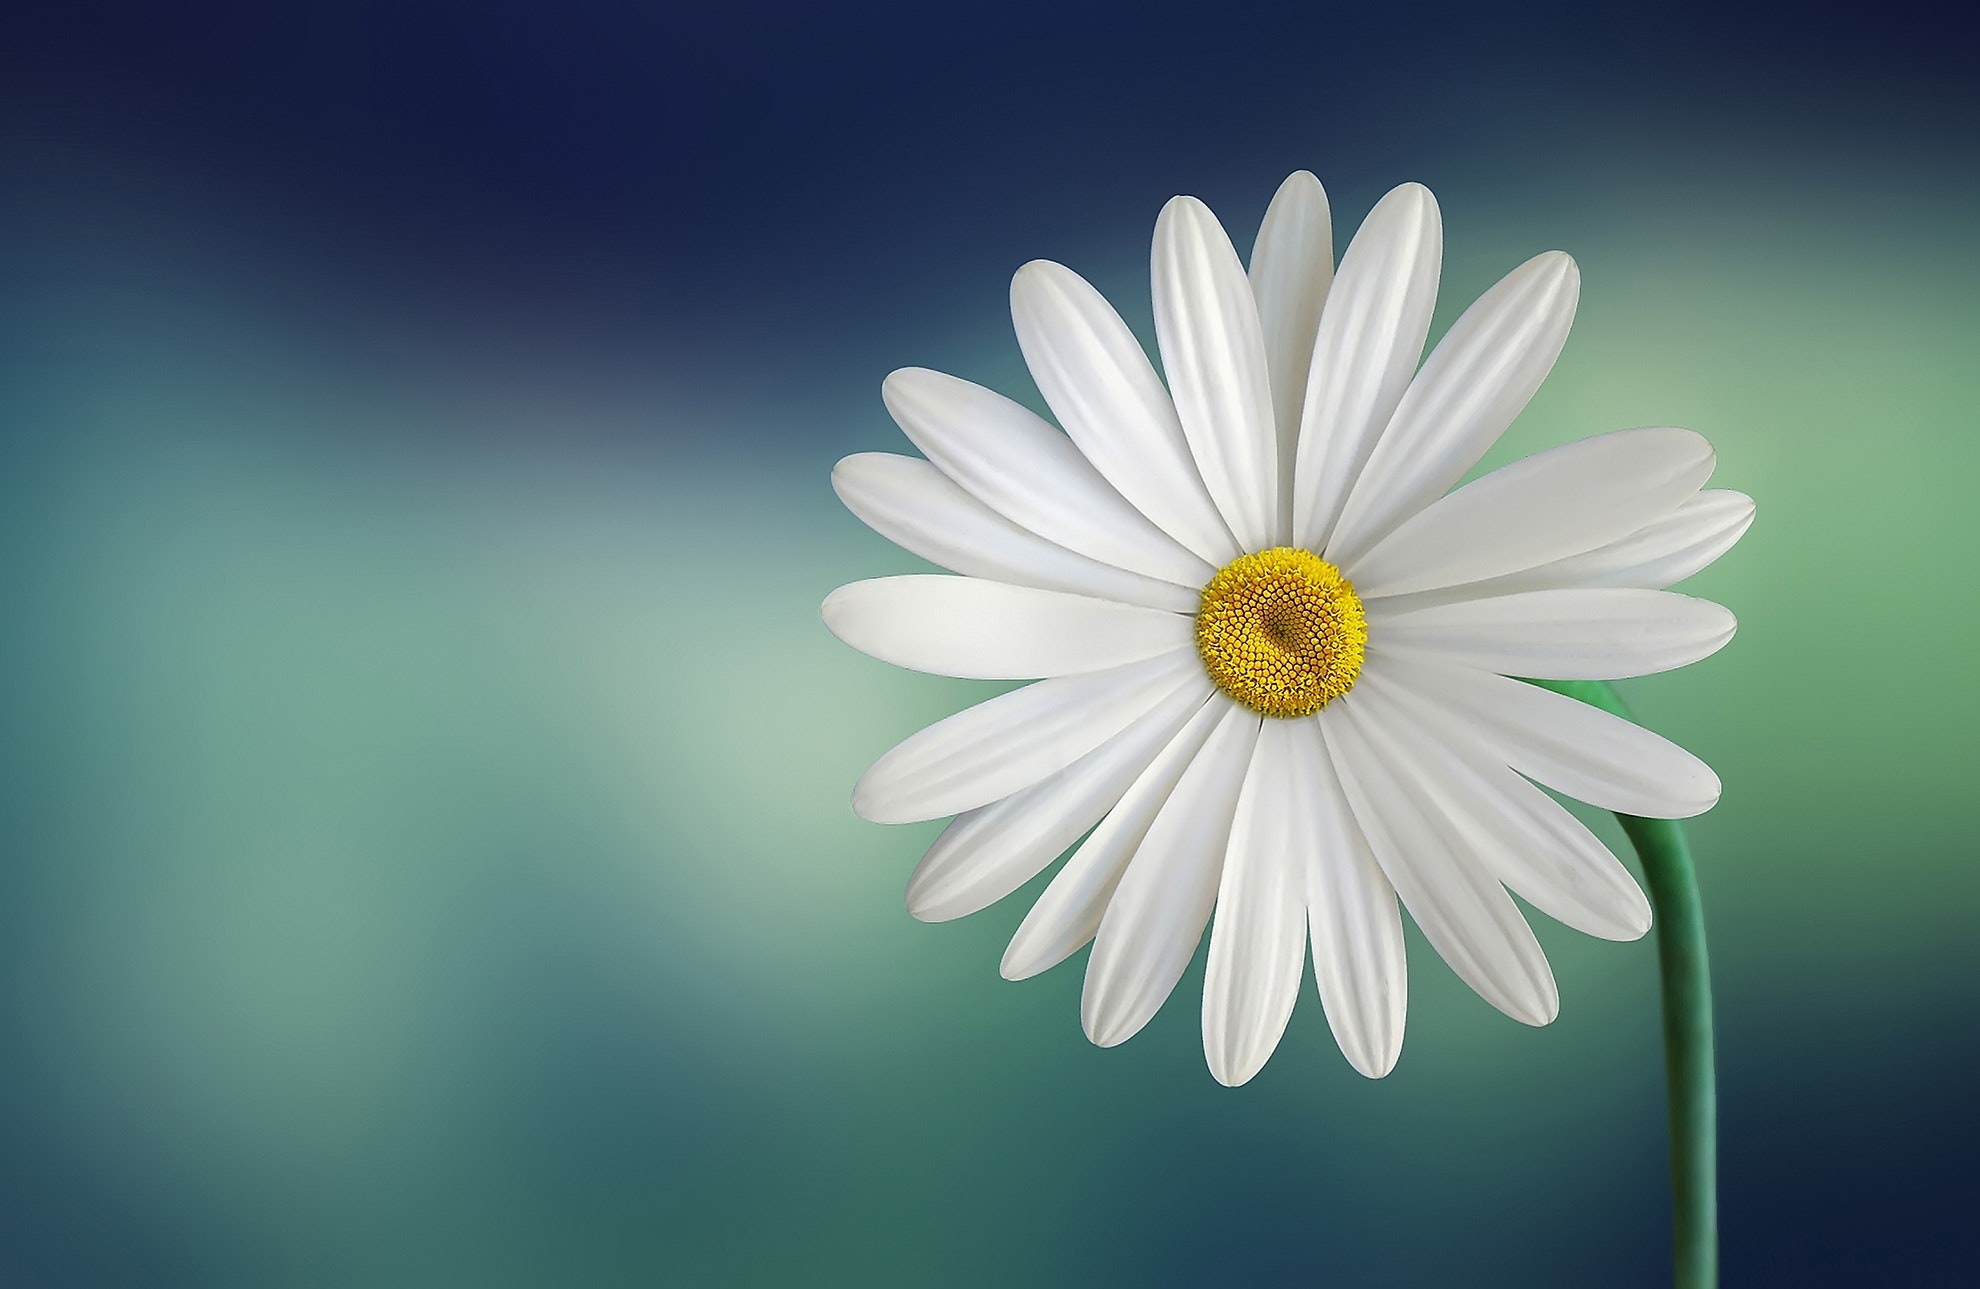 200 amazing daisy photos pexels free stock photos related searches flower flowers daisies hd wallpaper close up izmirmasajfo